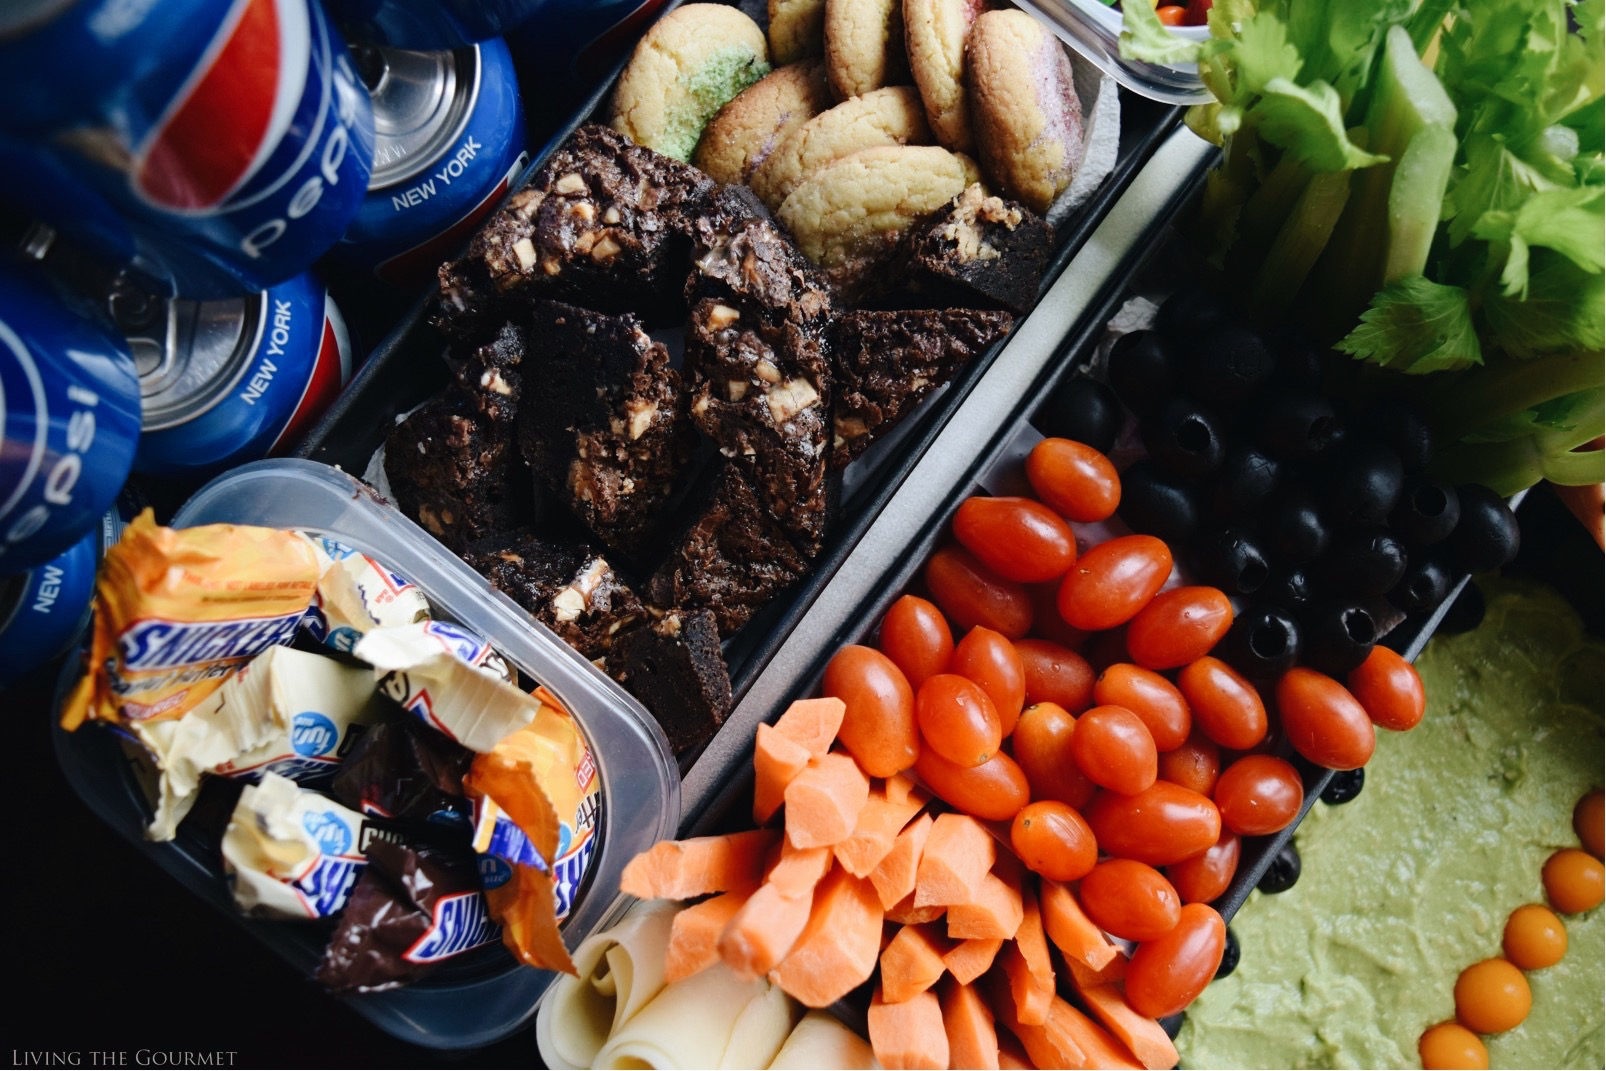 Living the Gourmet: Ultimate Gameday Snack Stadium | #GameDayGlory #ad